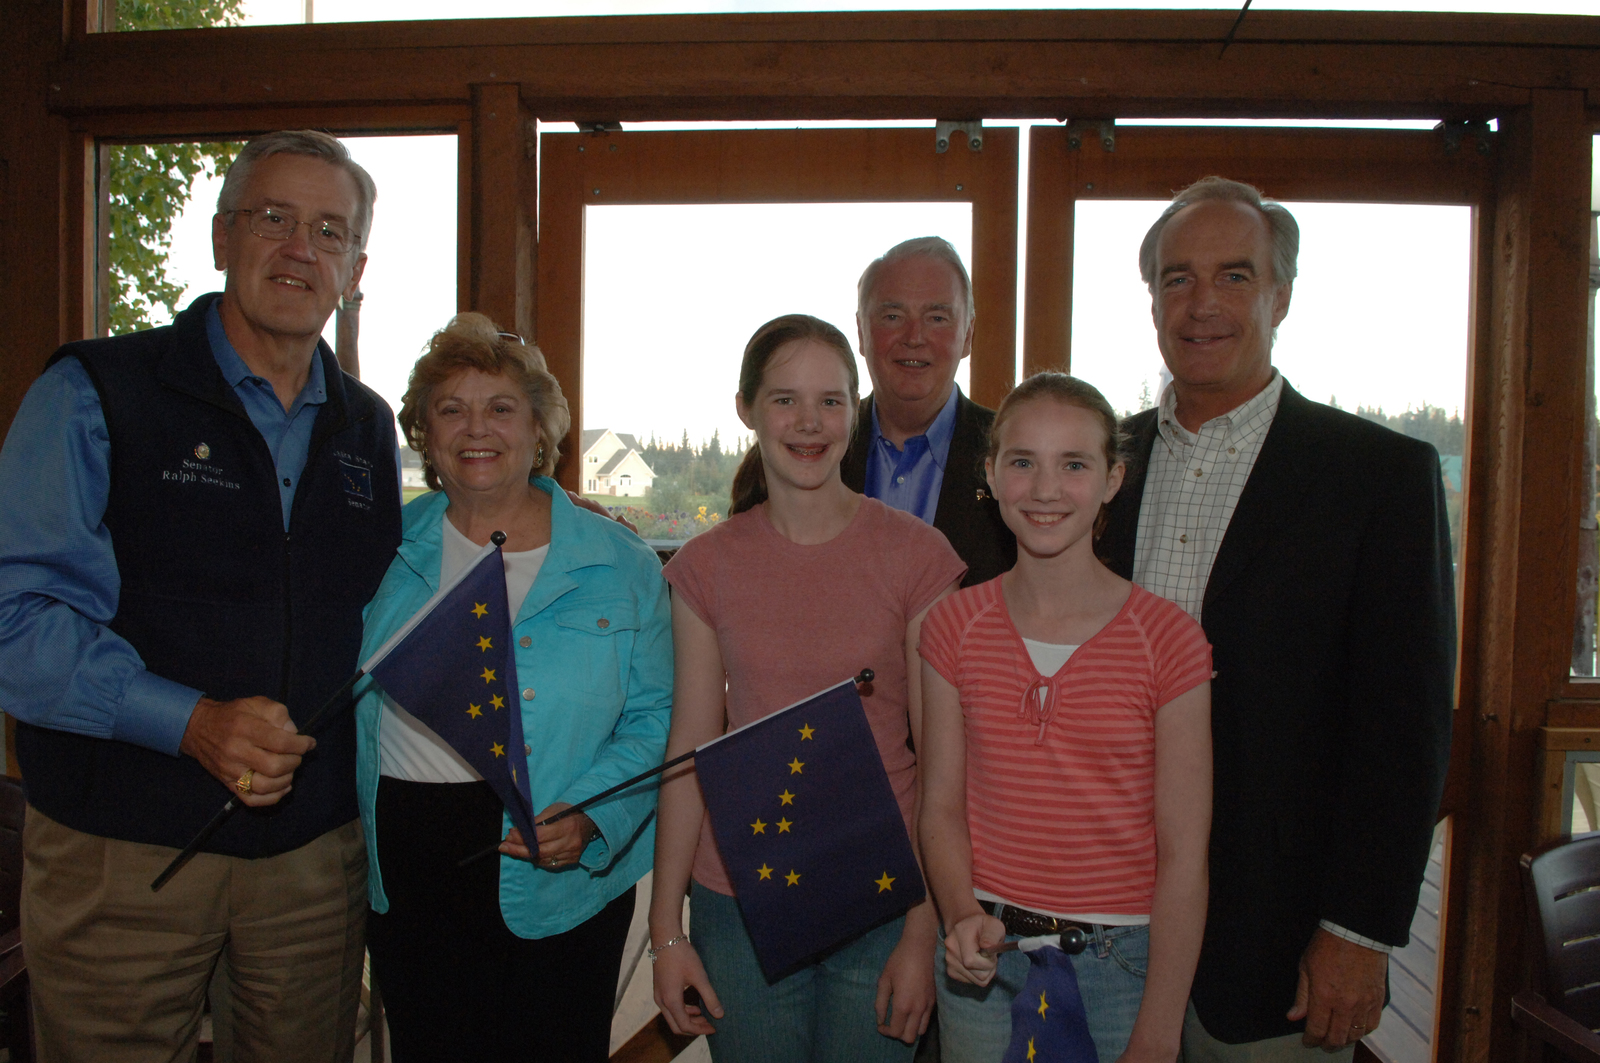 [Assignment: 48-DPA-K_lab810_Select] Secretary Dirk Kempthorne with [group including] Emma Hughes and Lauren Hughes, 8/28/2006 [48-DPA-K_lab810_Select_017.jpg]